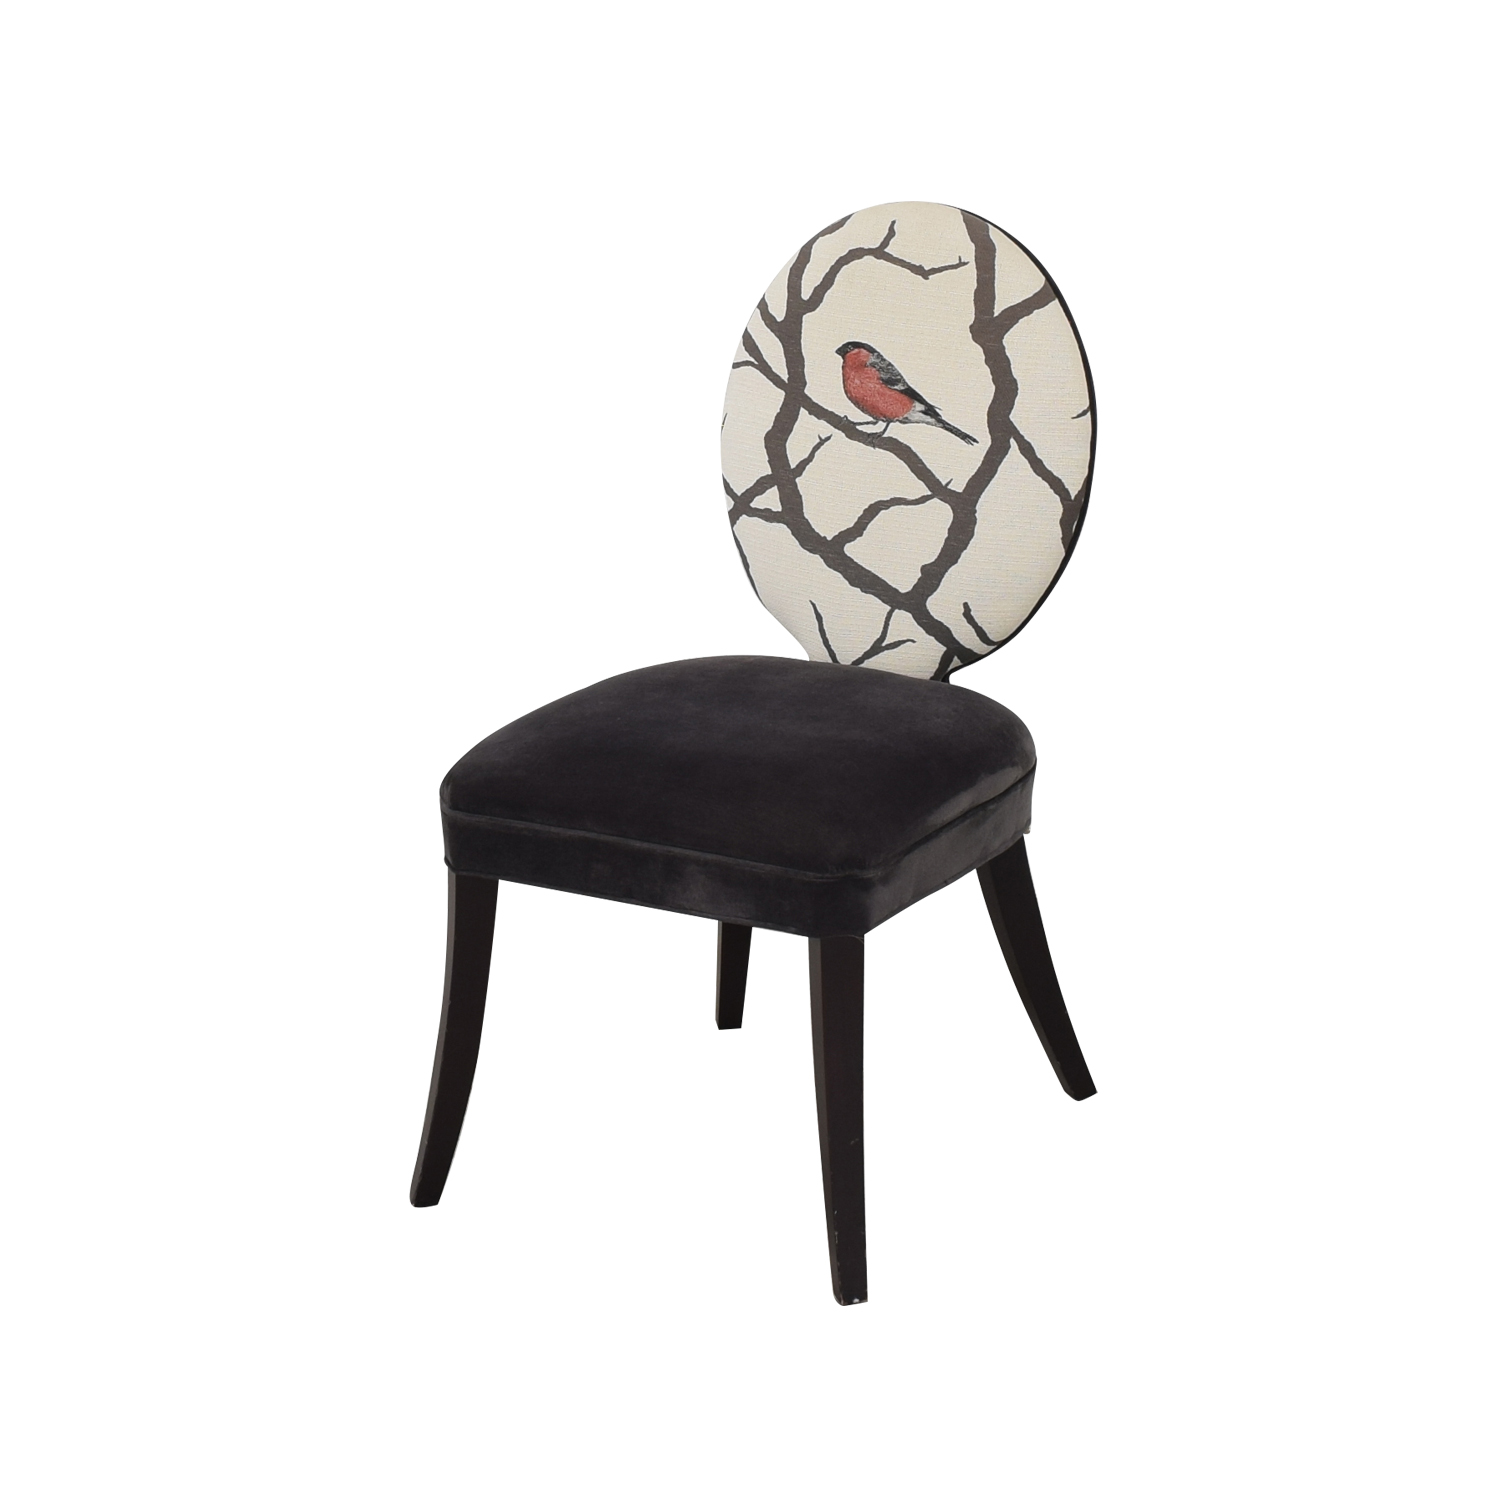 Mitchell Gold + Bob Williams Mitchell Gold + Bob Williams Oval Back Side Chair with Bird Print nyc